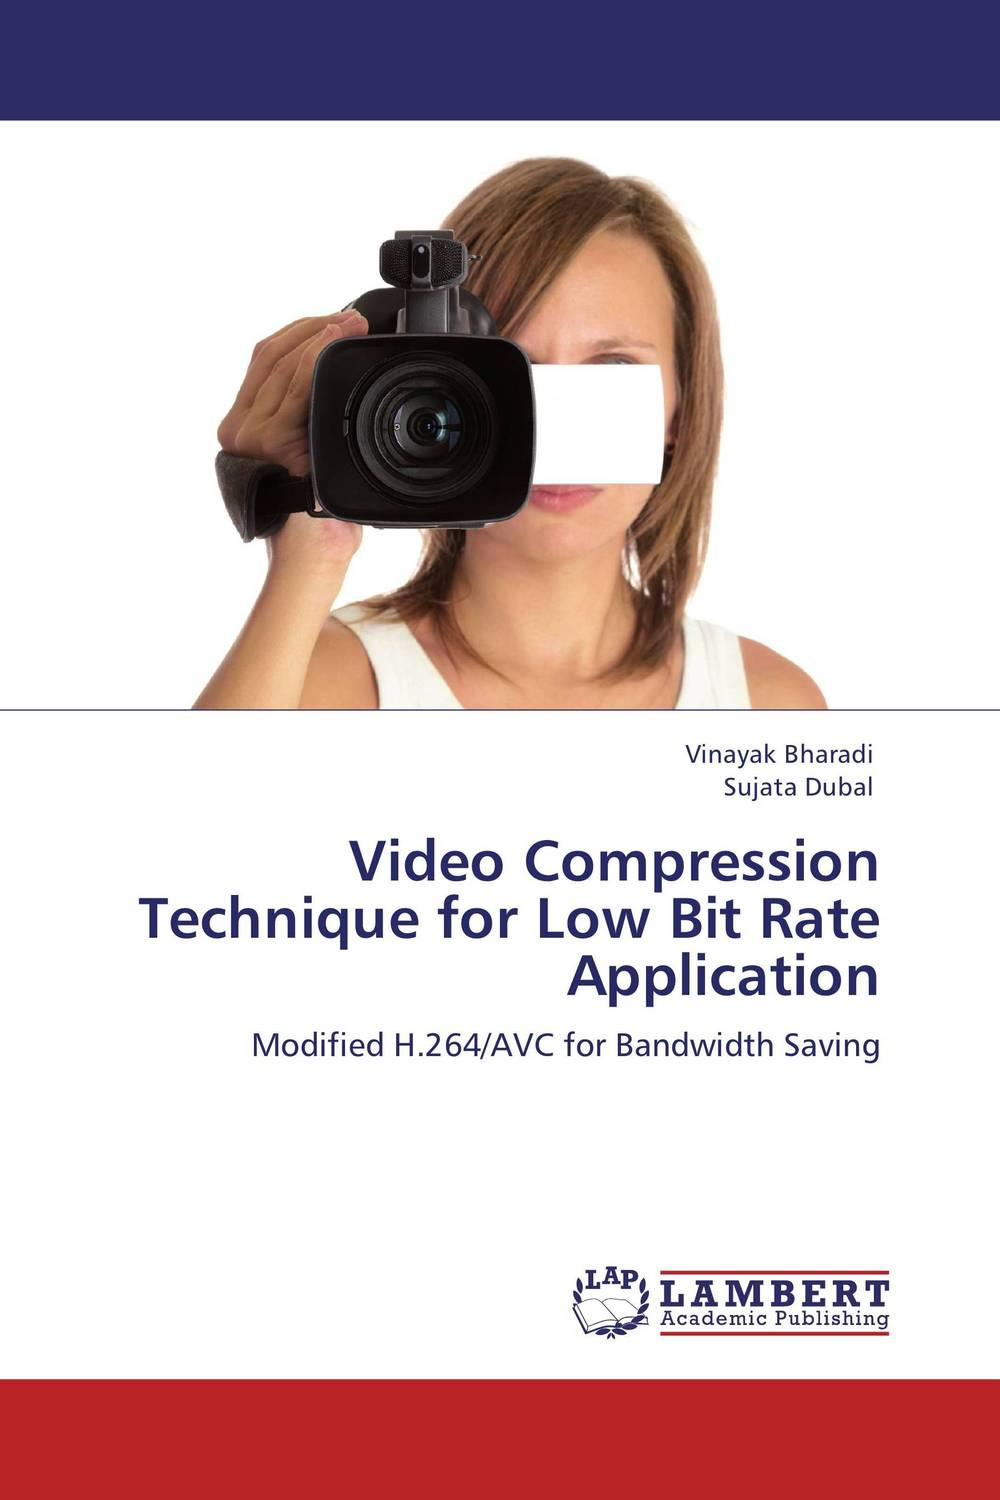 Video Compression Technique for Low Bit Rate Application intra and inter frames based on video compression techniques